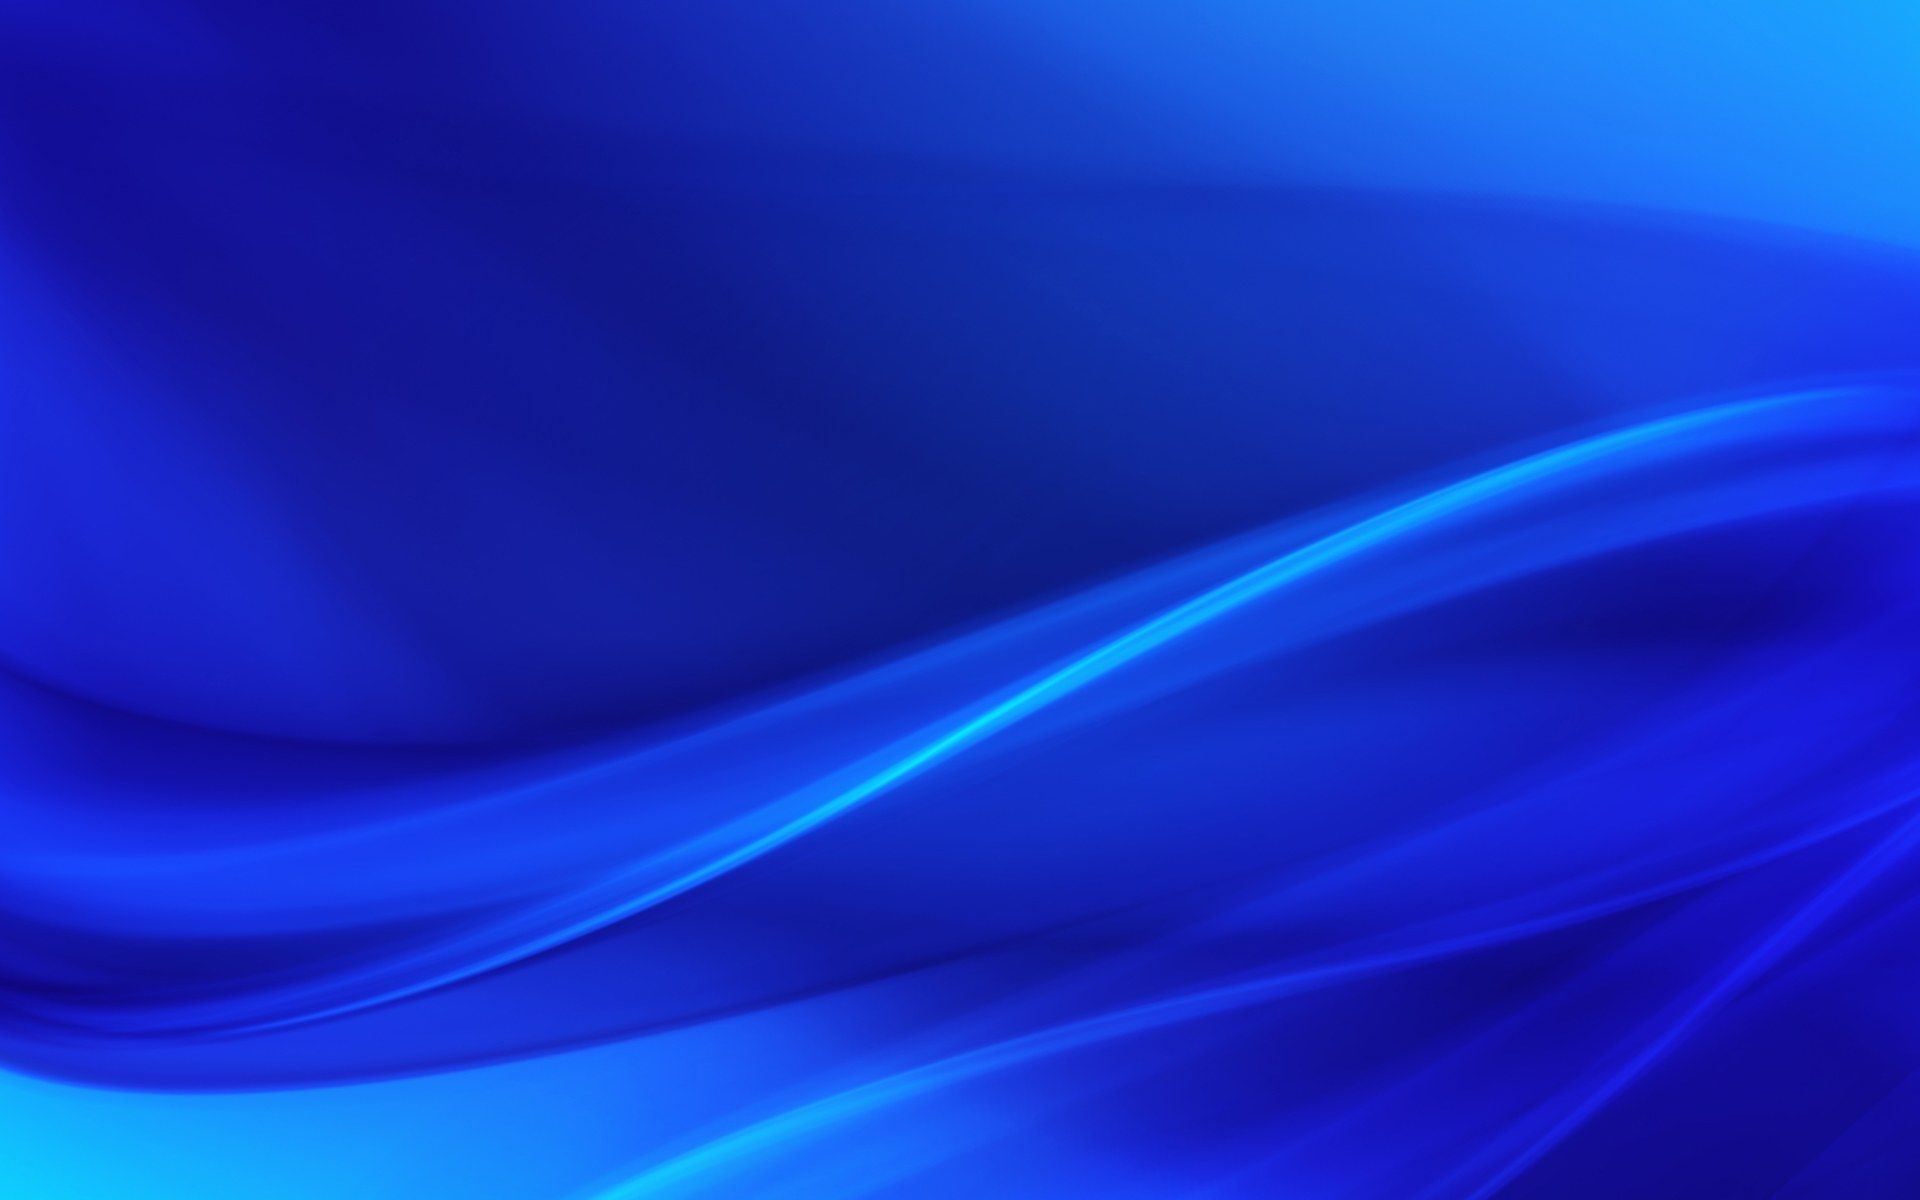 Blue Wallpaper_background